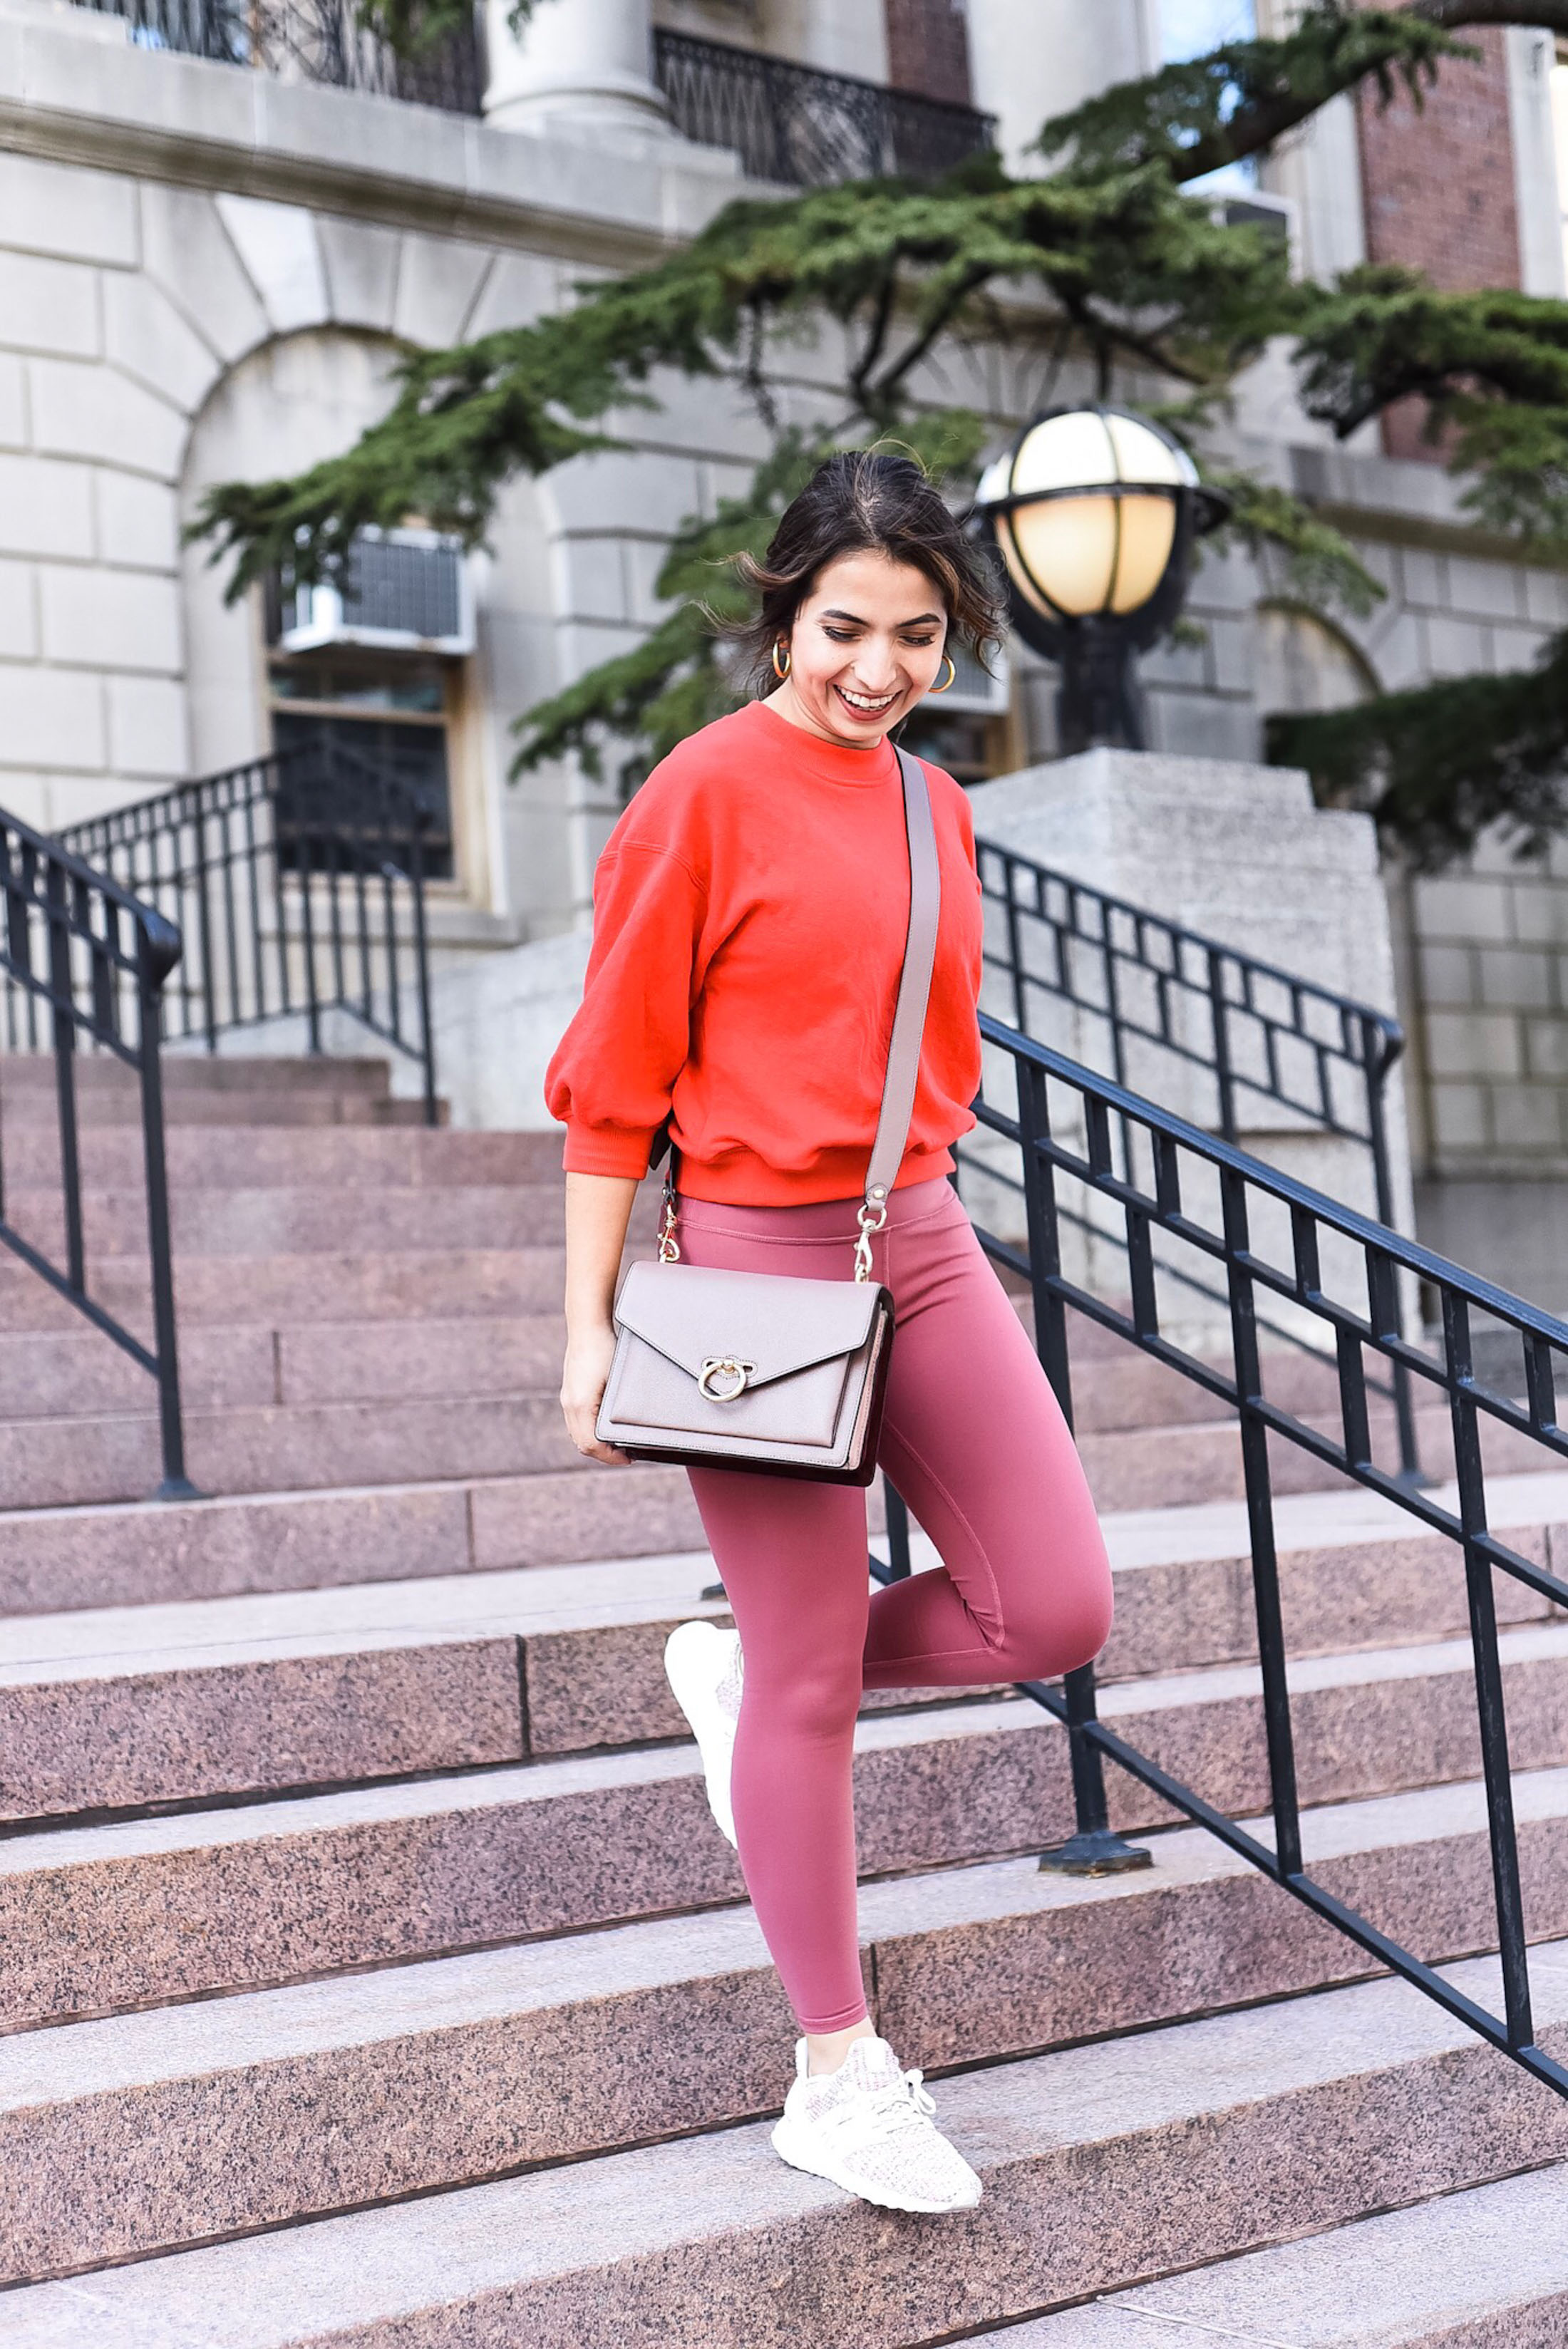 Athleisure is kind of an art. Leggings & tops seem so simple, but looking polished takes thought. A good bag & cute sneakers are the fix. Here's how.